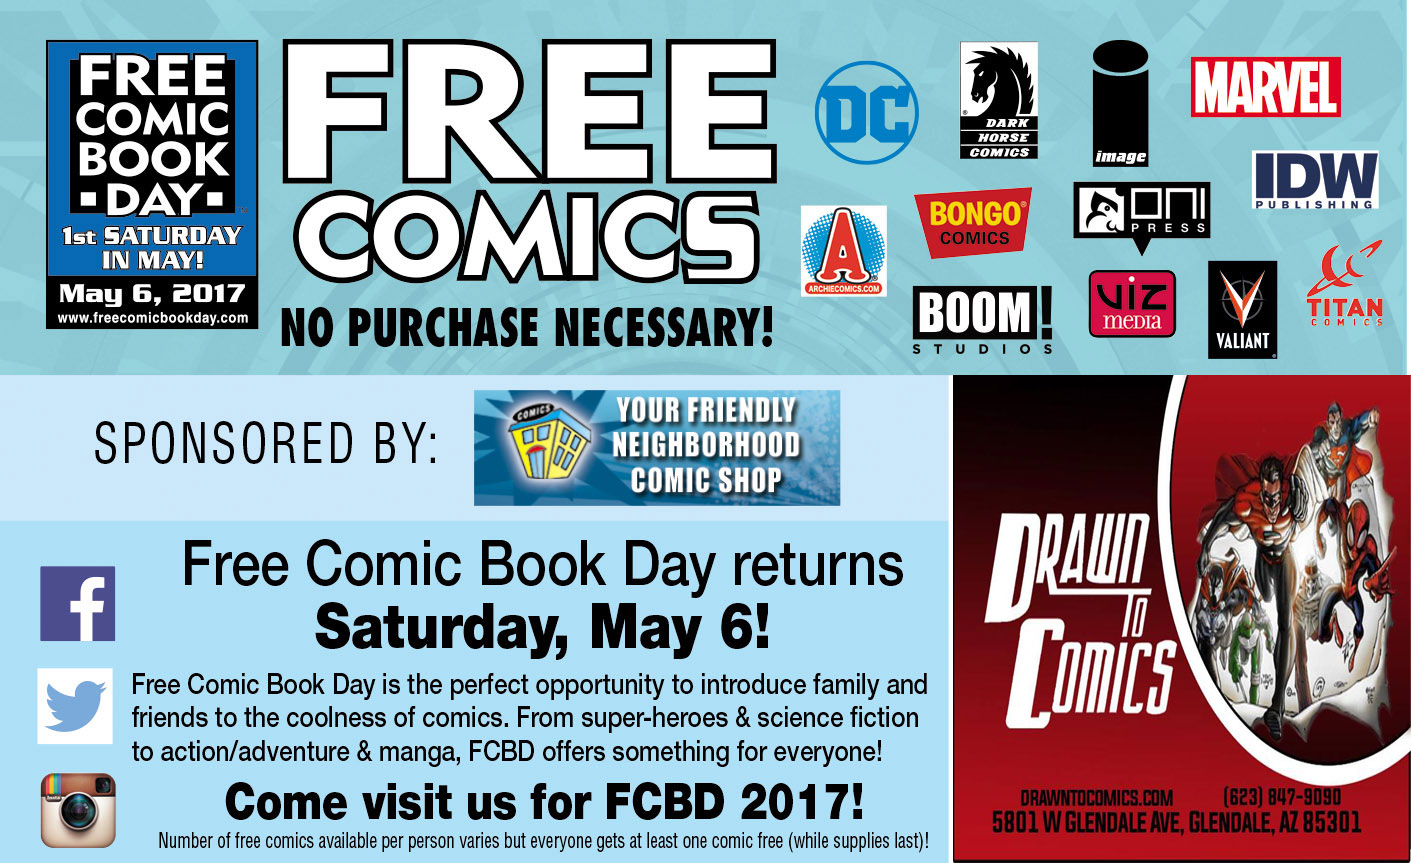 free-comic-book-day-post-card-W-LOGO